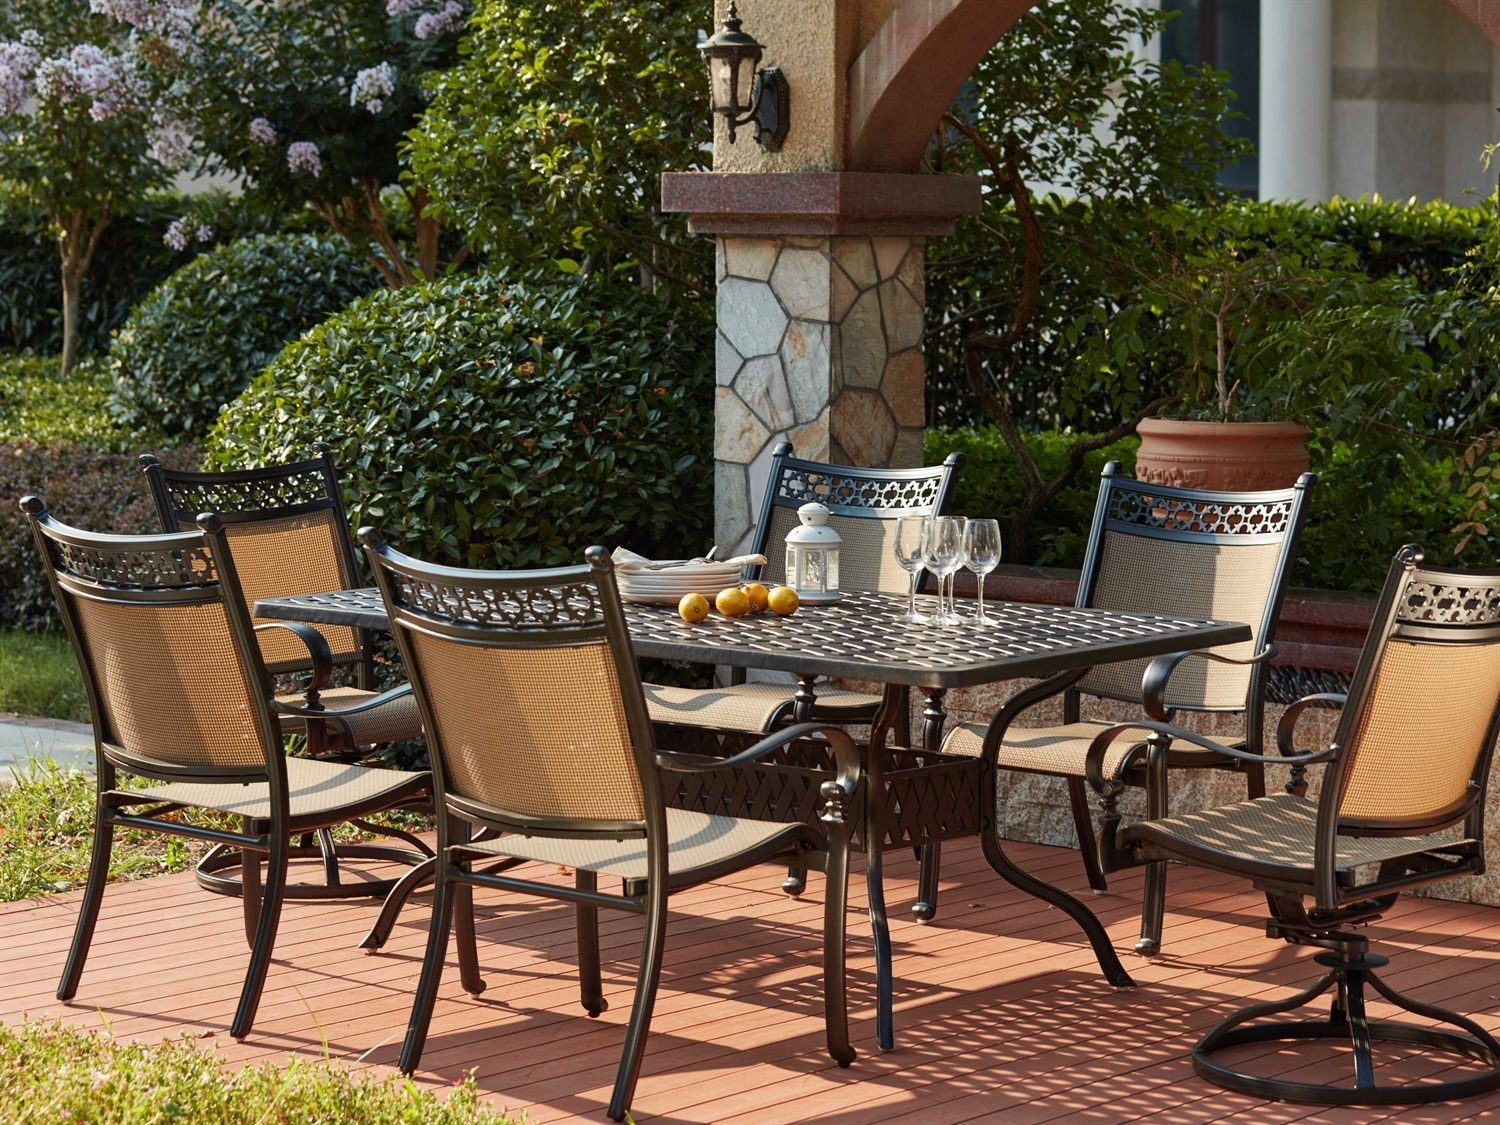 Darlee Outdoor Living Standard Mountain View Cast Aluminum 7 Piece Intended For Most Recent Valencia 72 Inch 7 Piece Dining Sets (View 16 of 20)